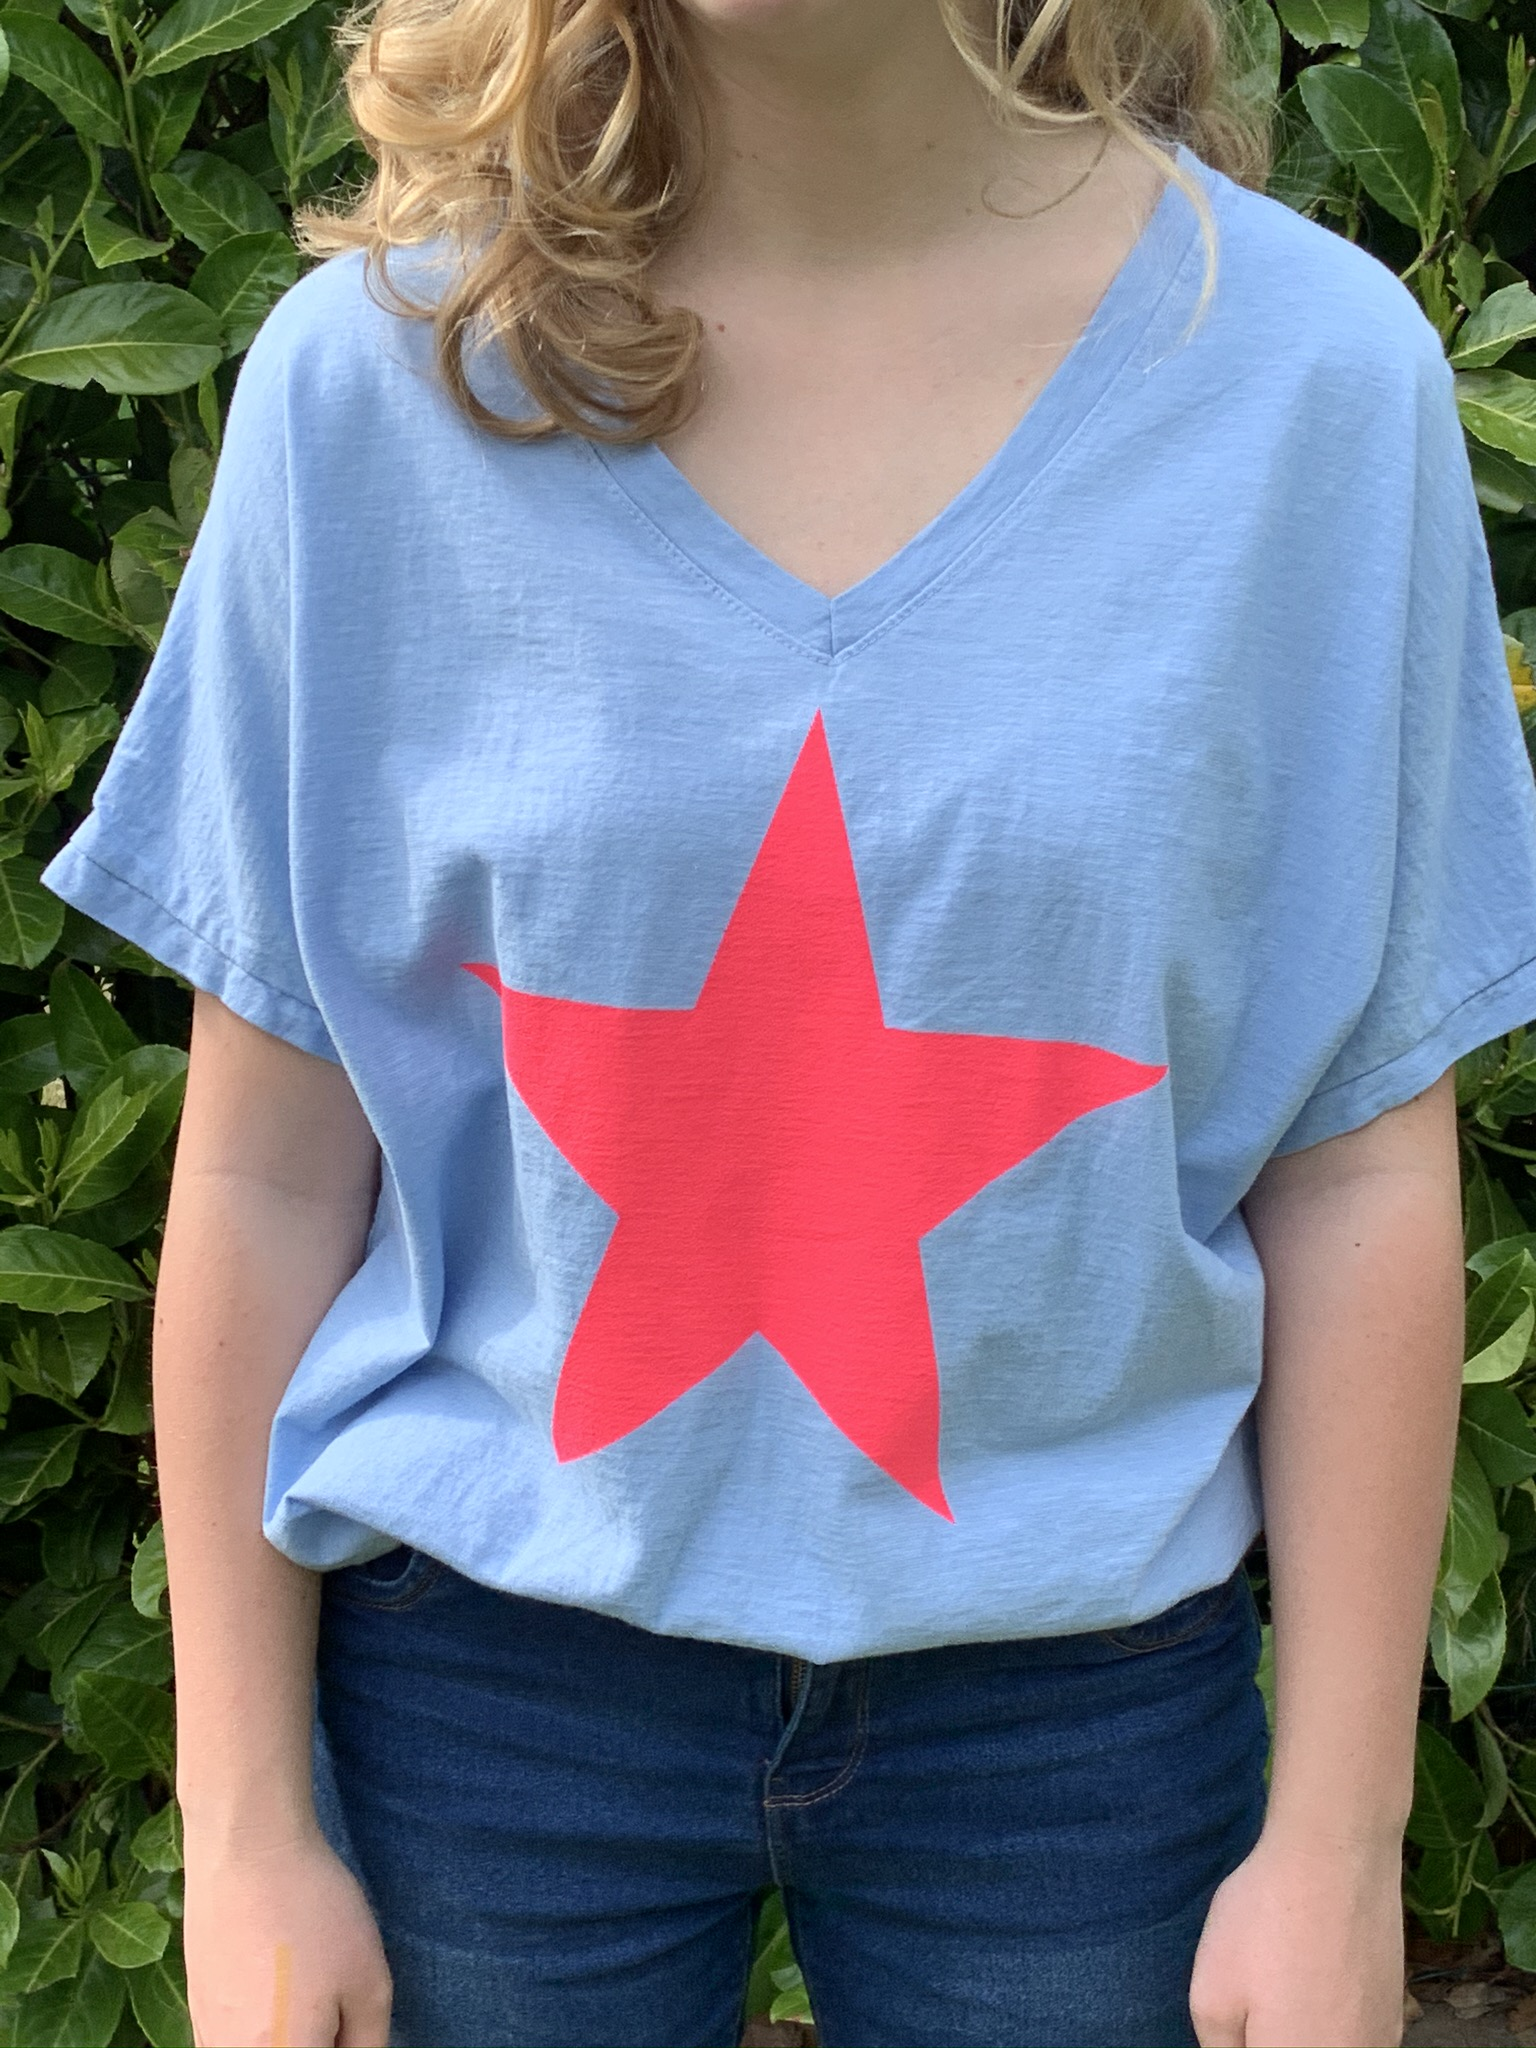 MSH cotton tee shirts fuchsia star design